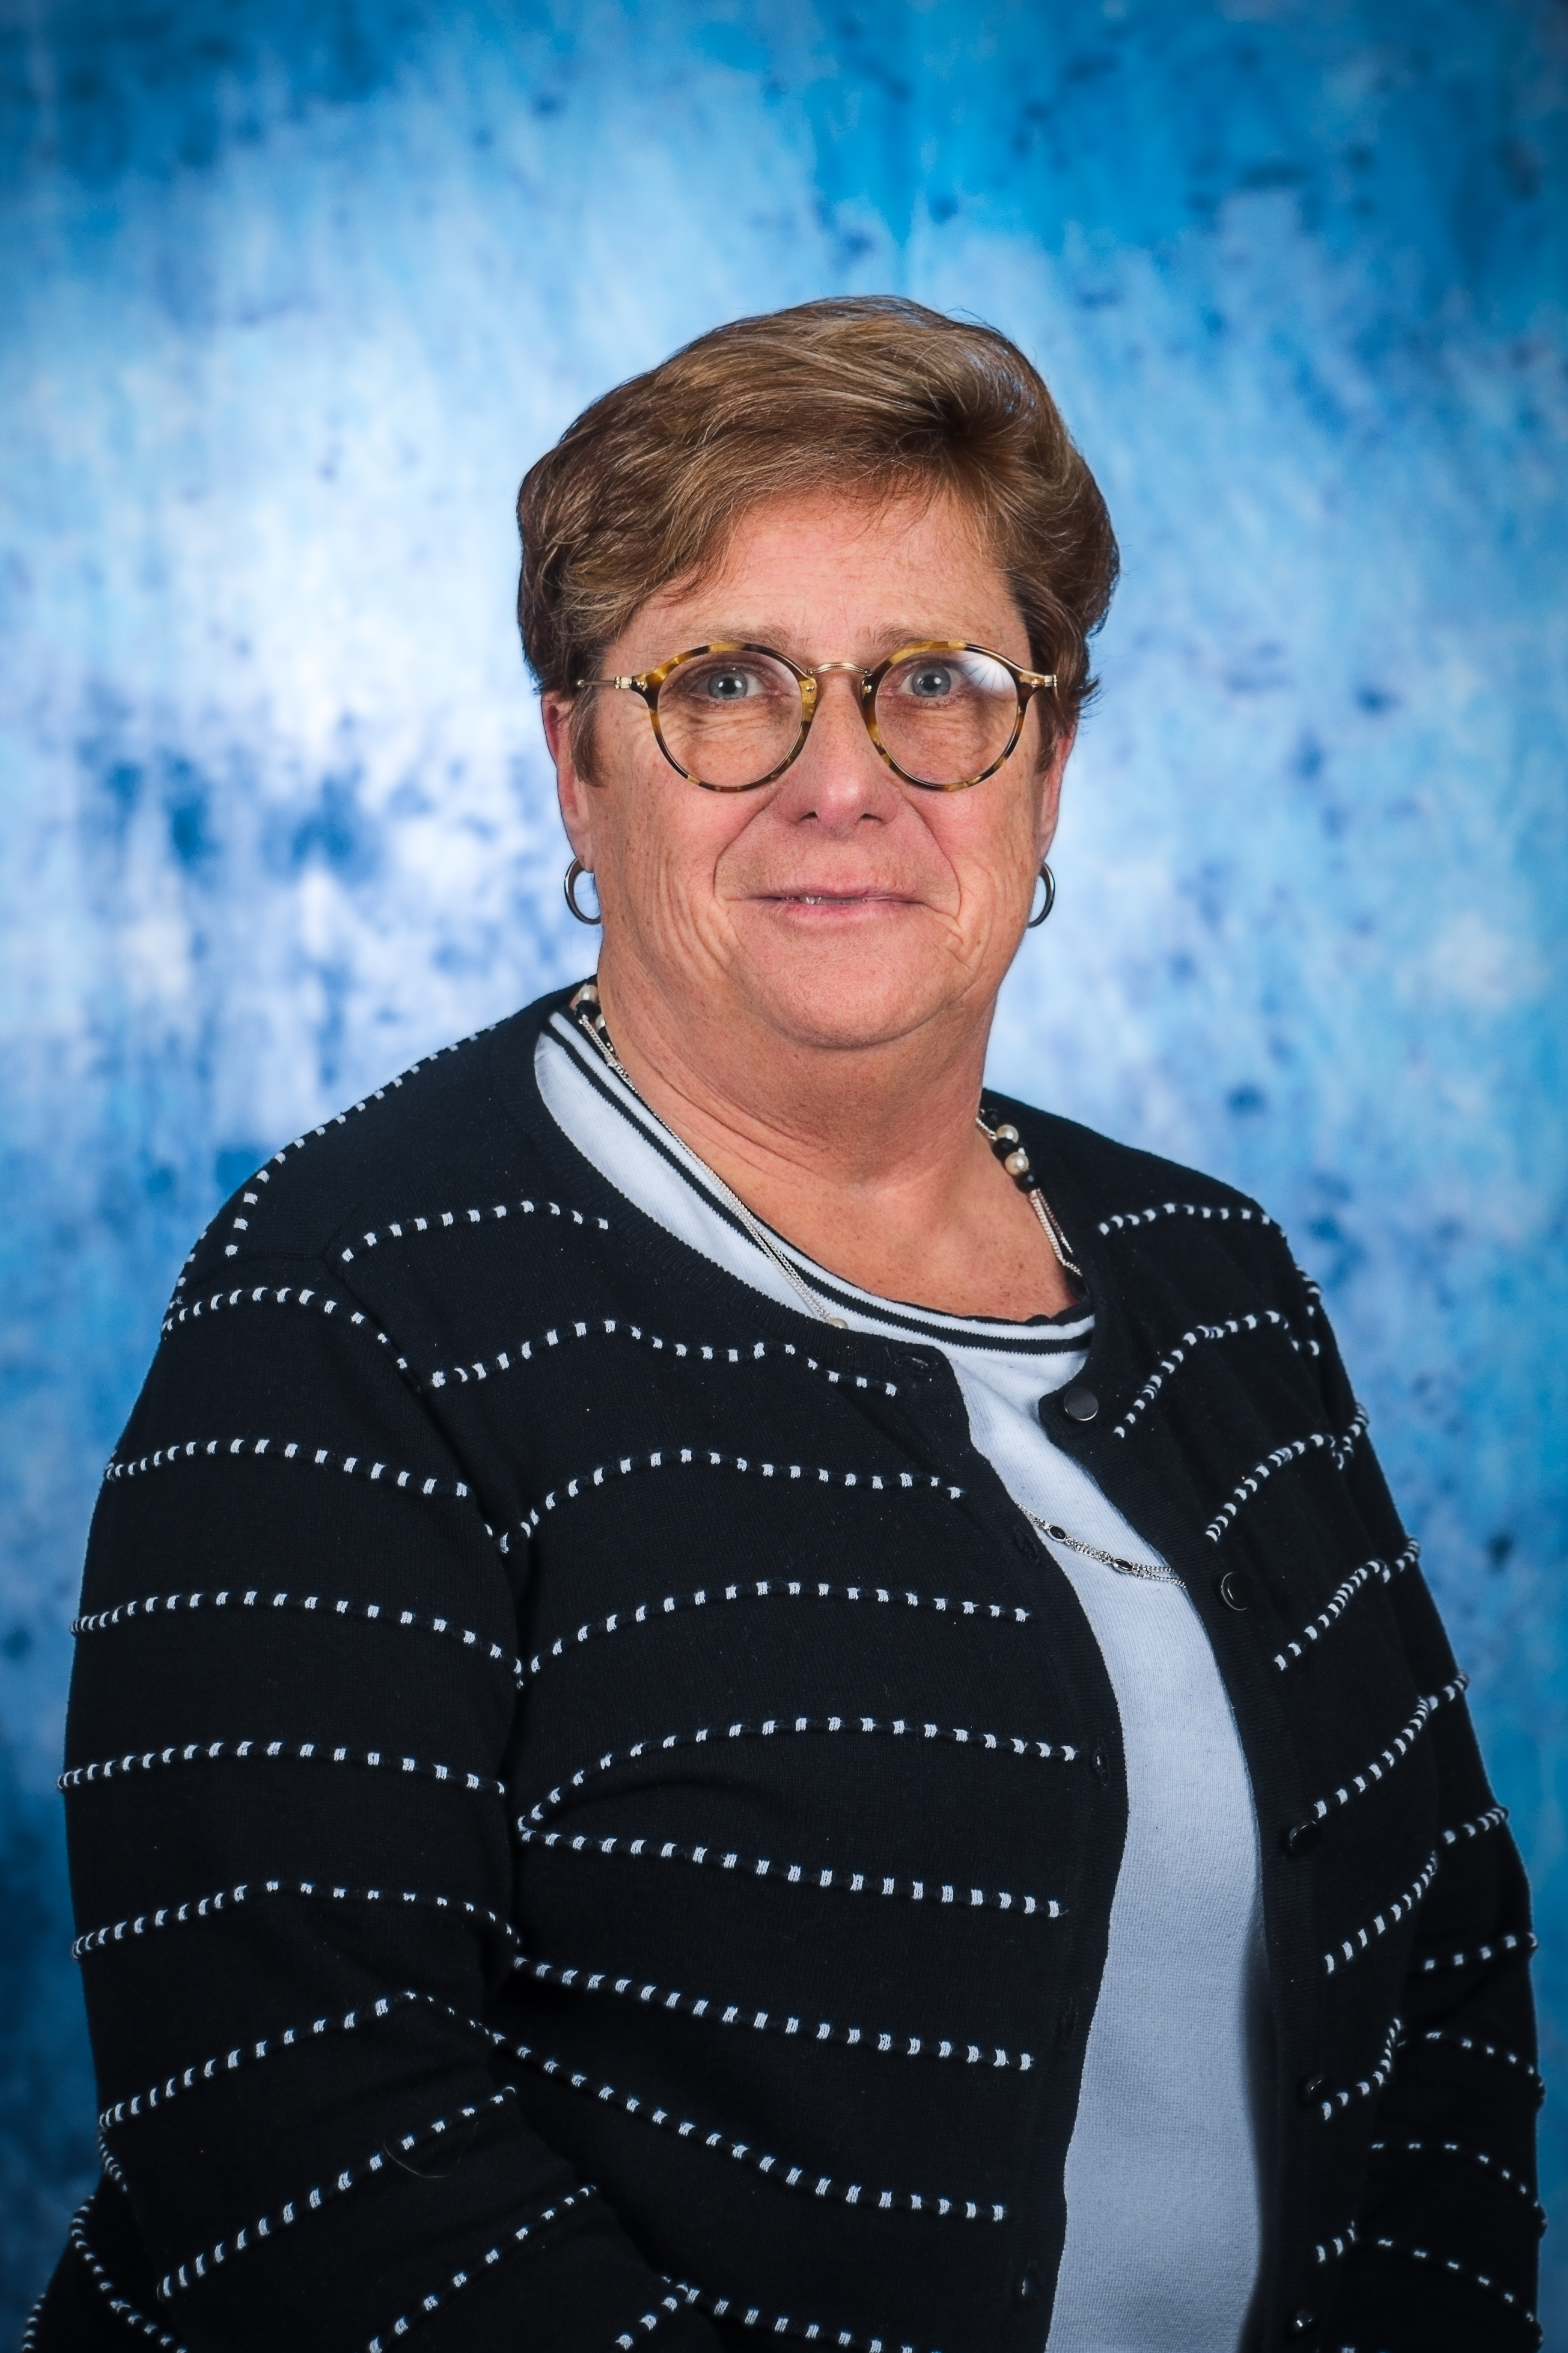 Wilma Hart-Flynn, MHHS Vice President and CNO